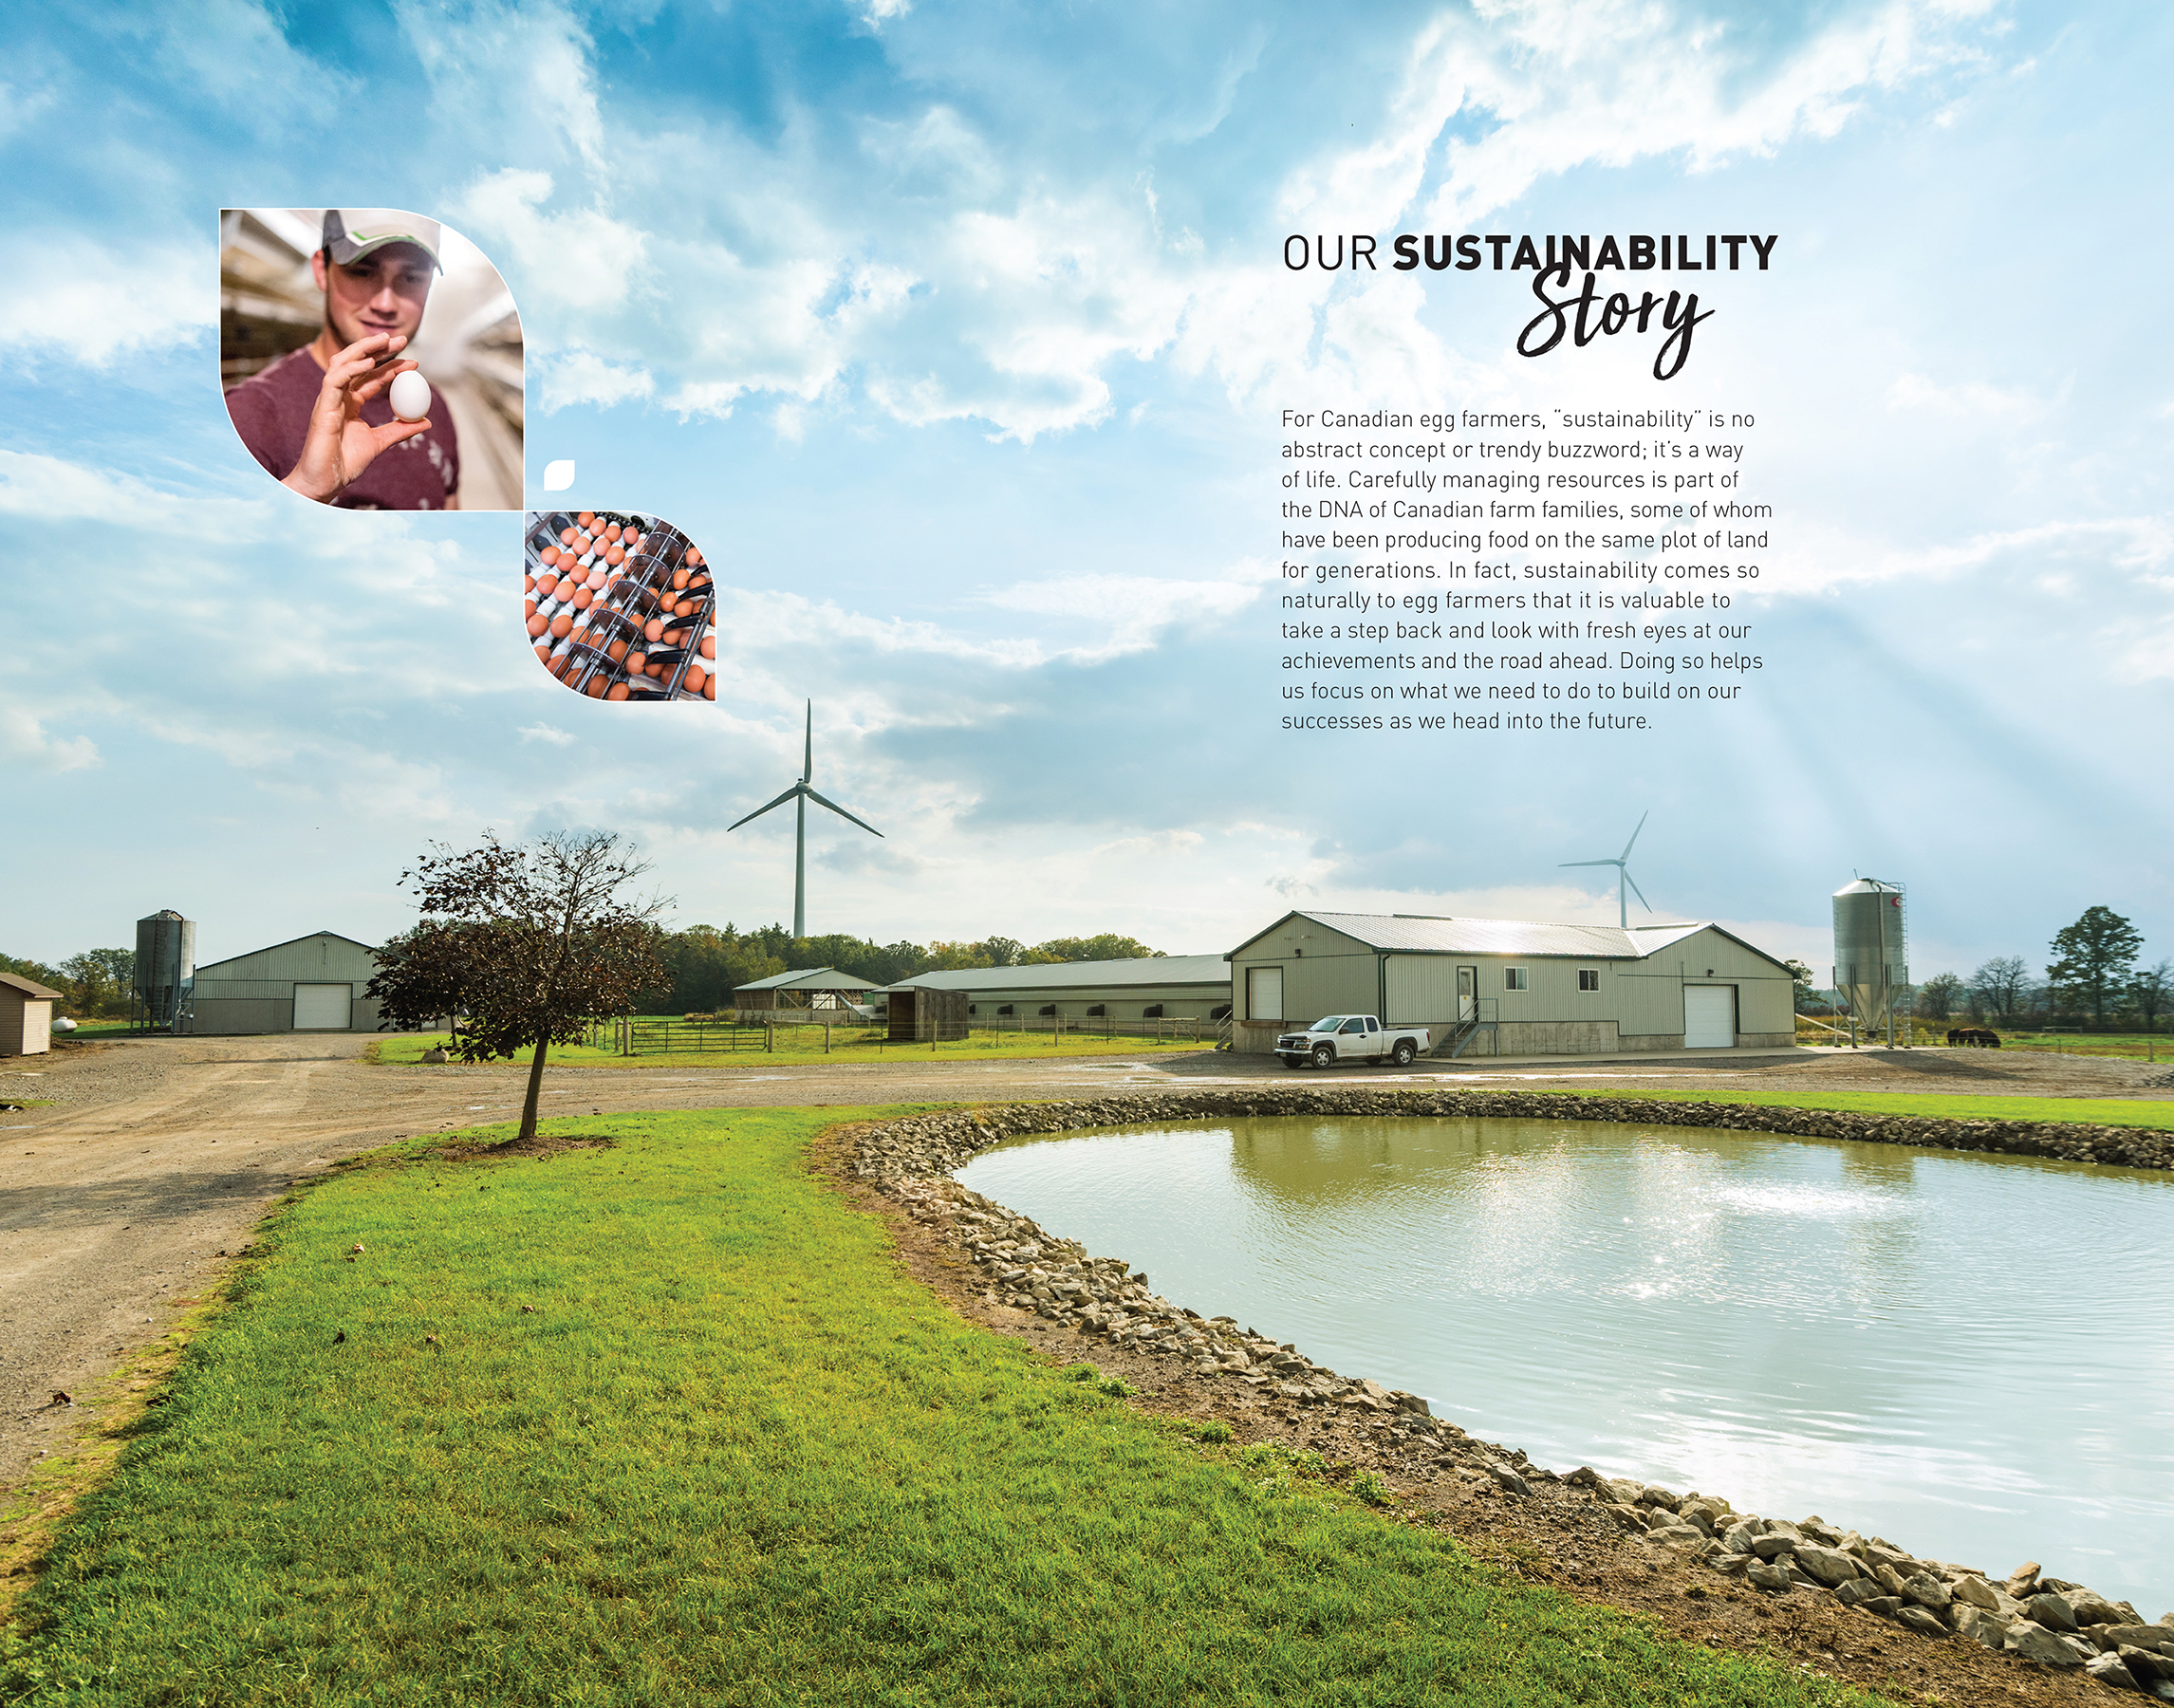 Sample page of Our Sustainability Story